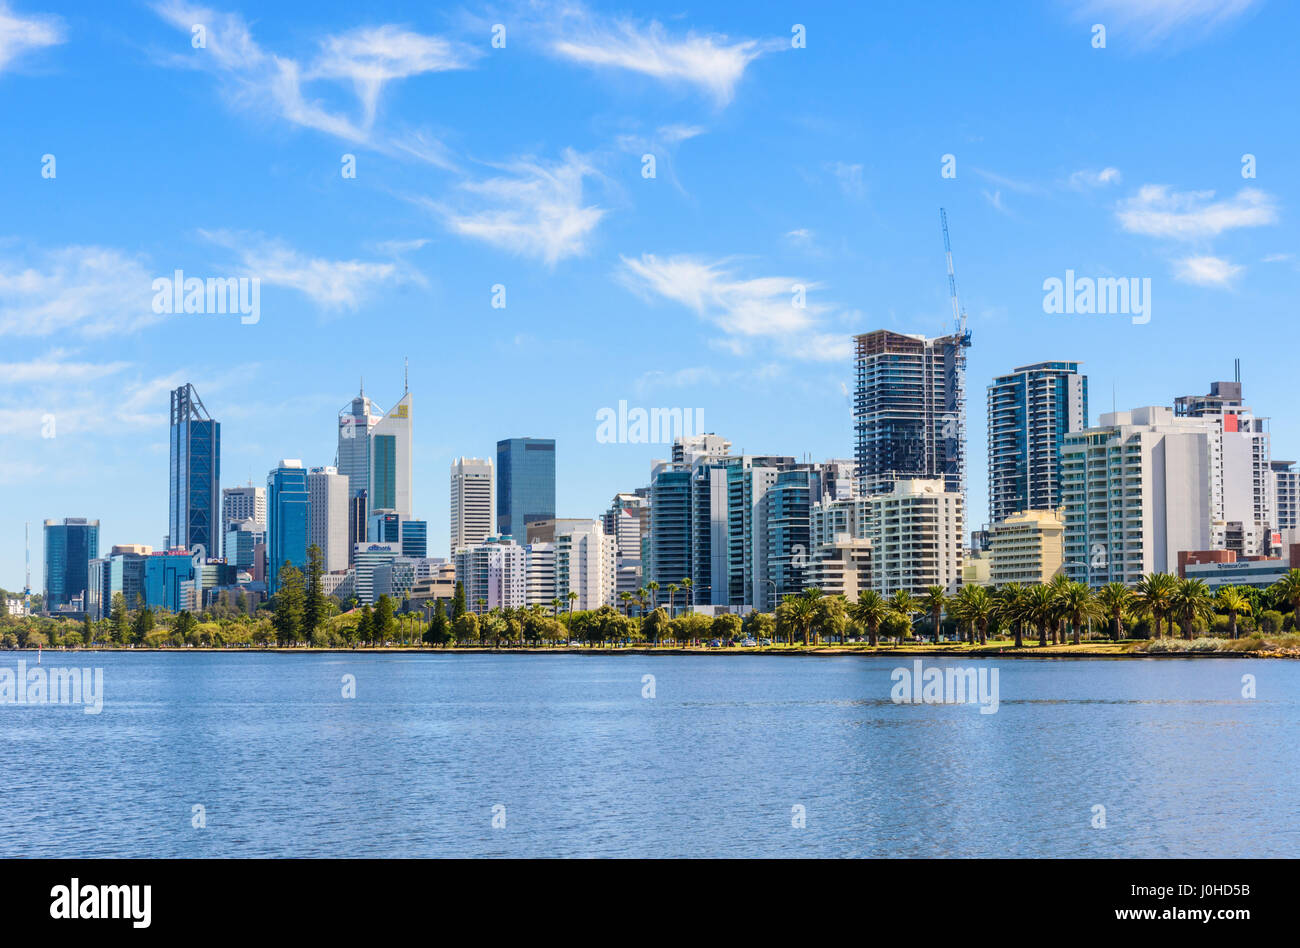 Perth city skyline views across the Swan River foreshore, Perth, Western Australia - Stock Image